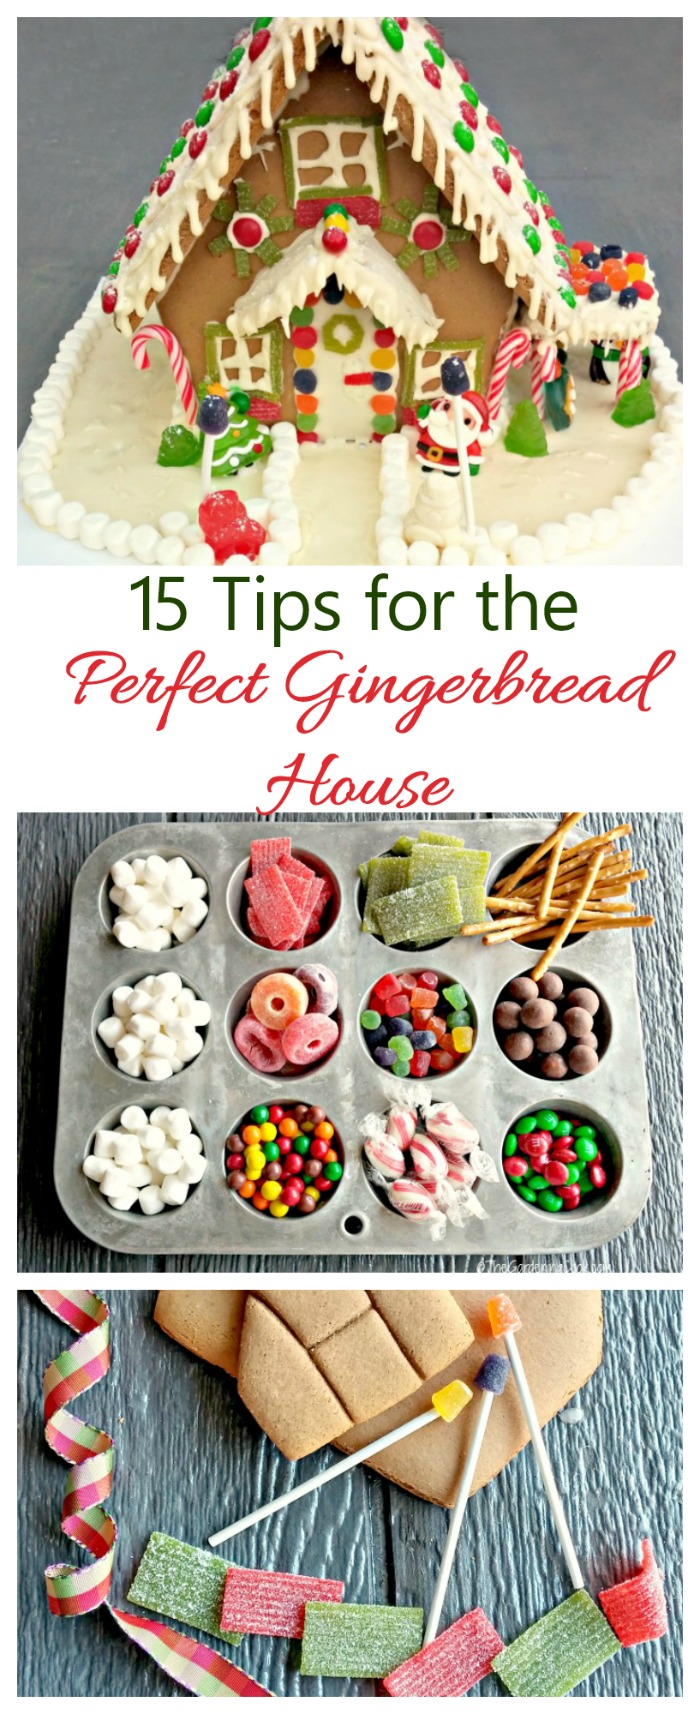 Follow these tips for making the perfect gingerbread house to make your Christmas creation a work of art this year. #gingerbreadhousese #perfectgingerbreadhouse